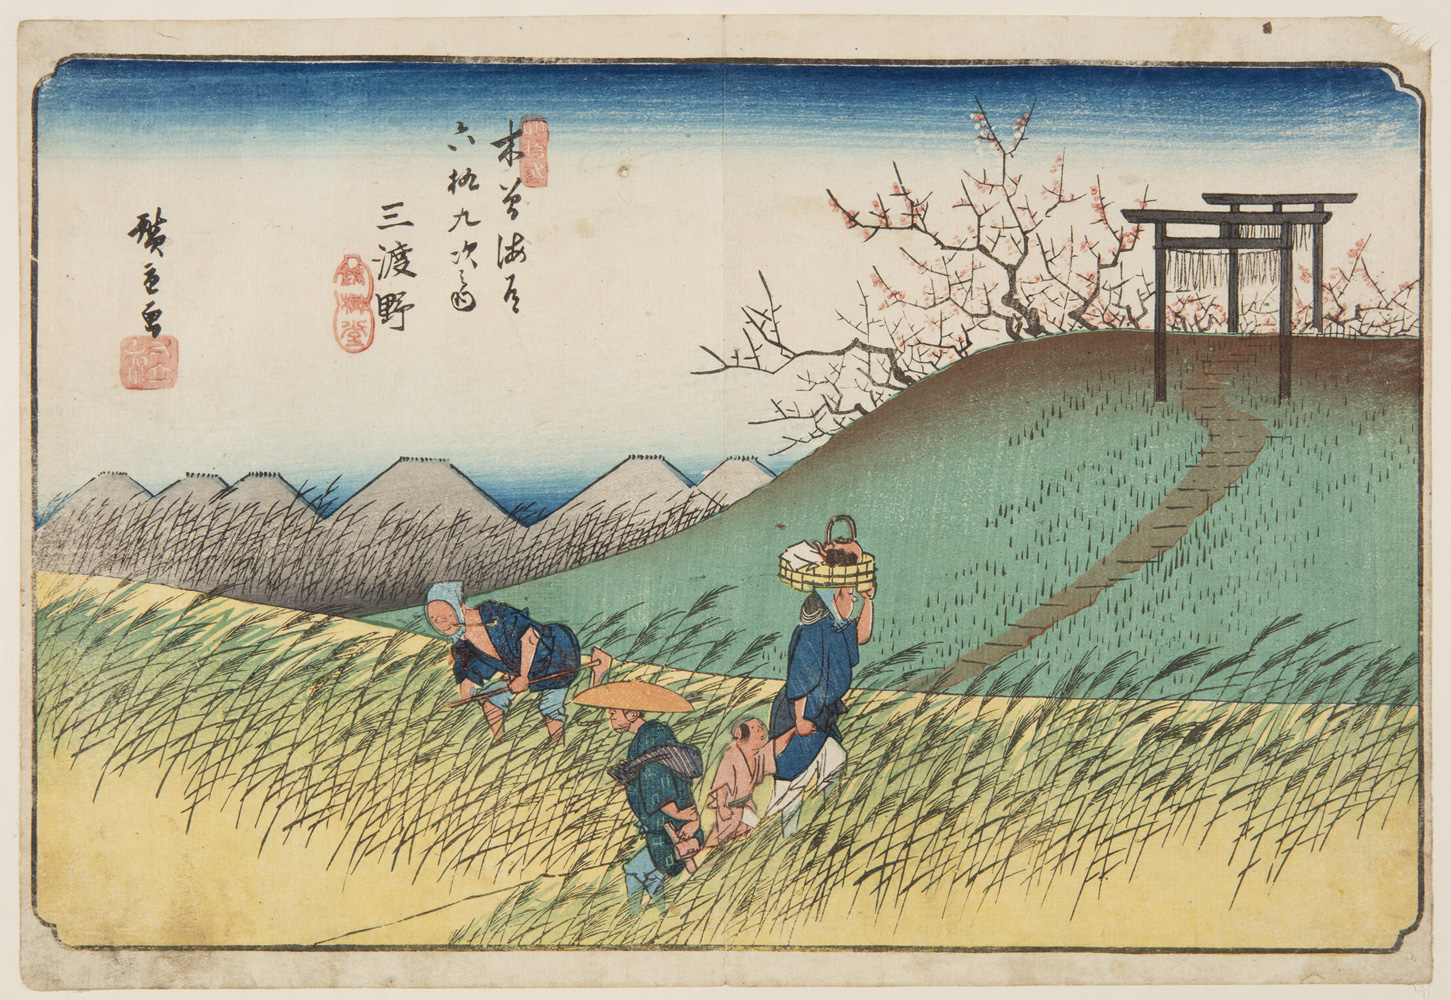 Japanese print of a rural landscape. Four figures dressed in traditional clothes, one bent over tending the fields, another standing, a woman carries a basket on her head and holds a child's hand. A path weaves away over a hill, there is blossom in the trees.